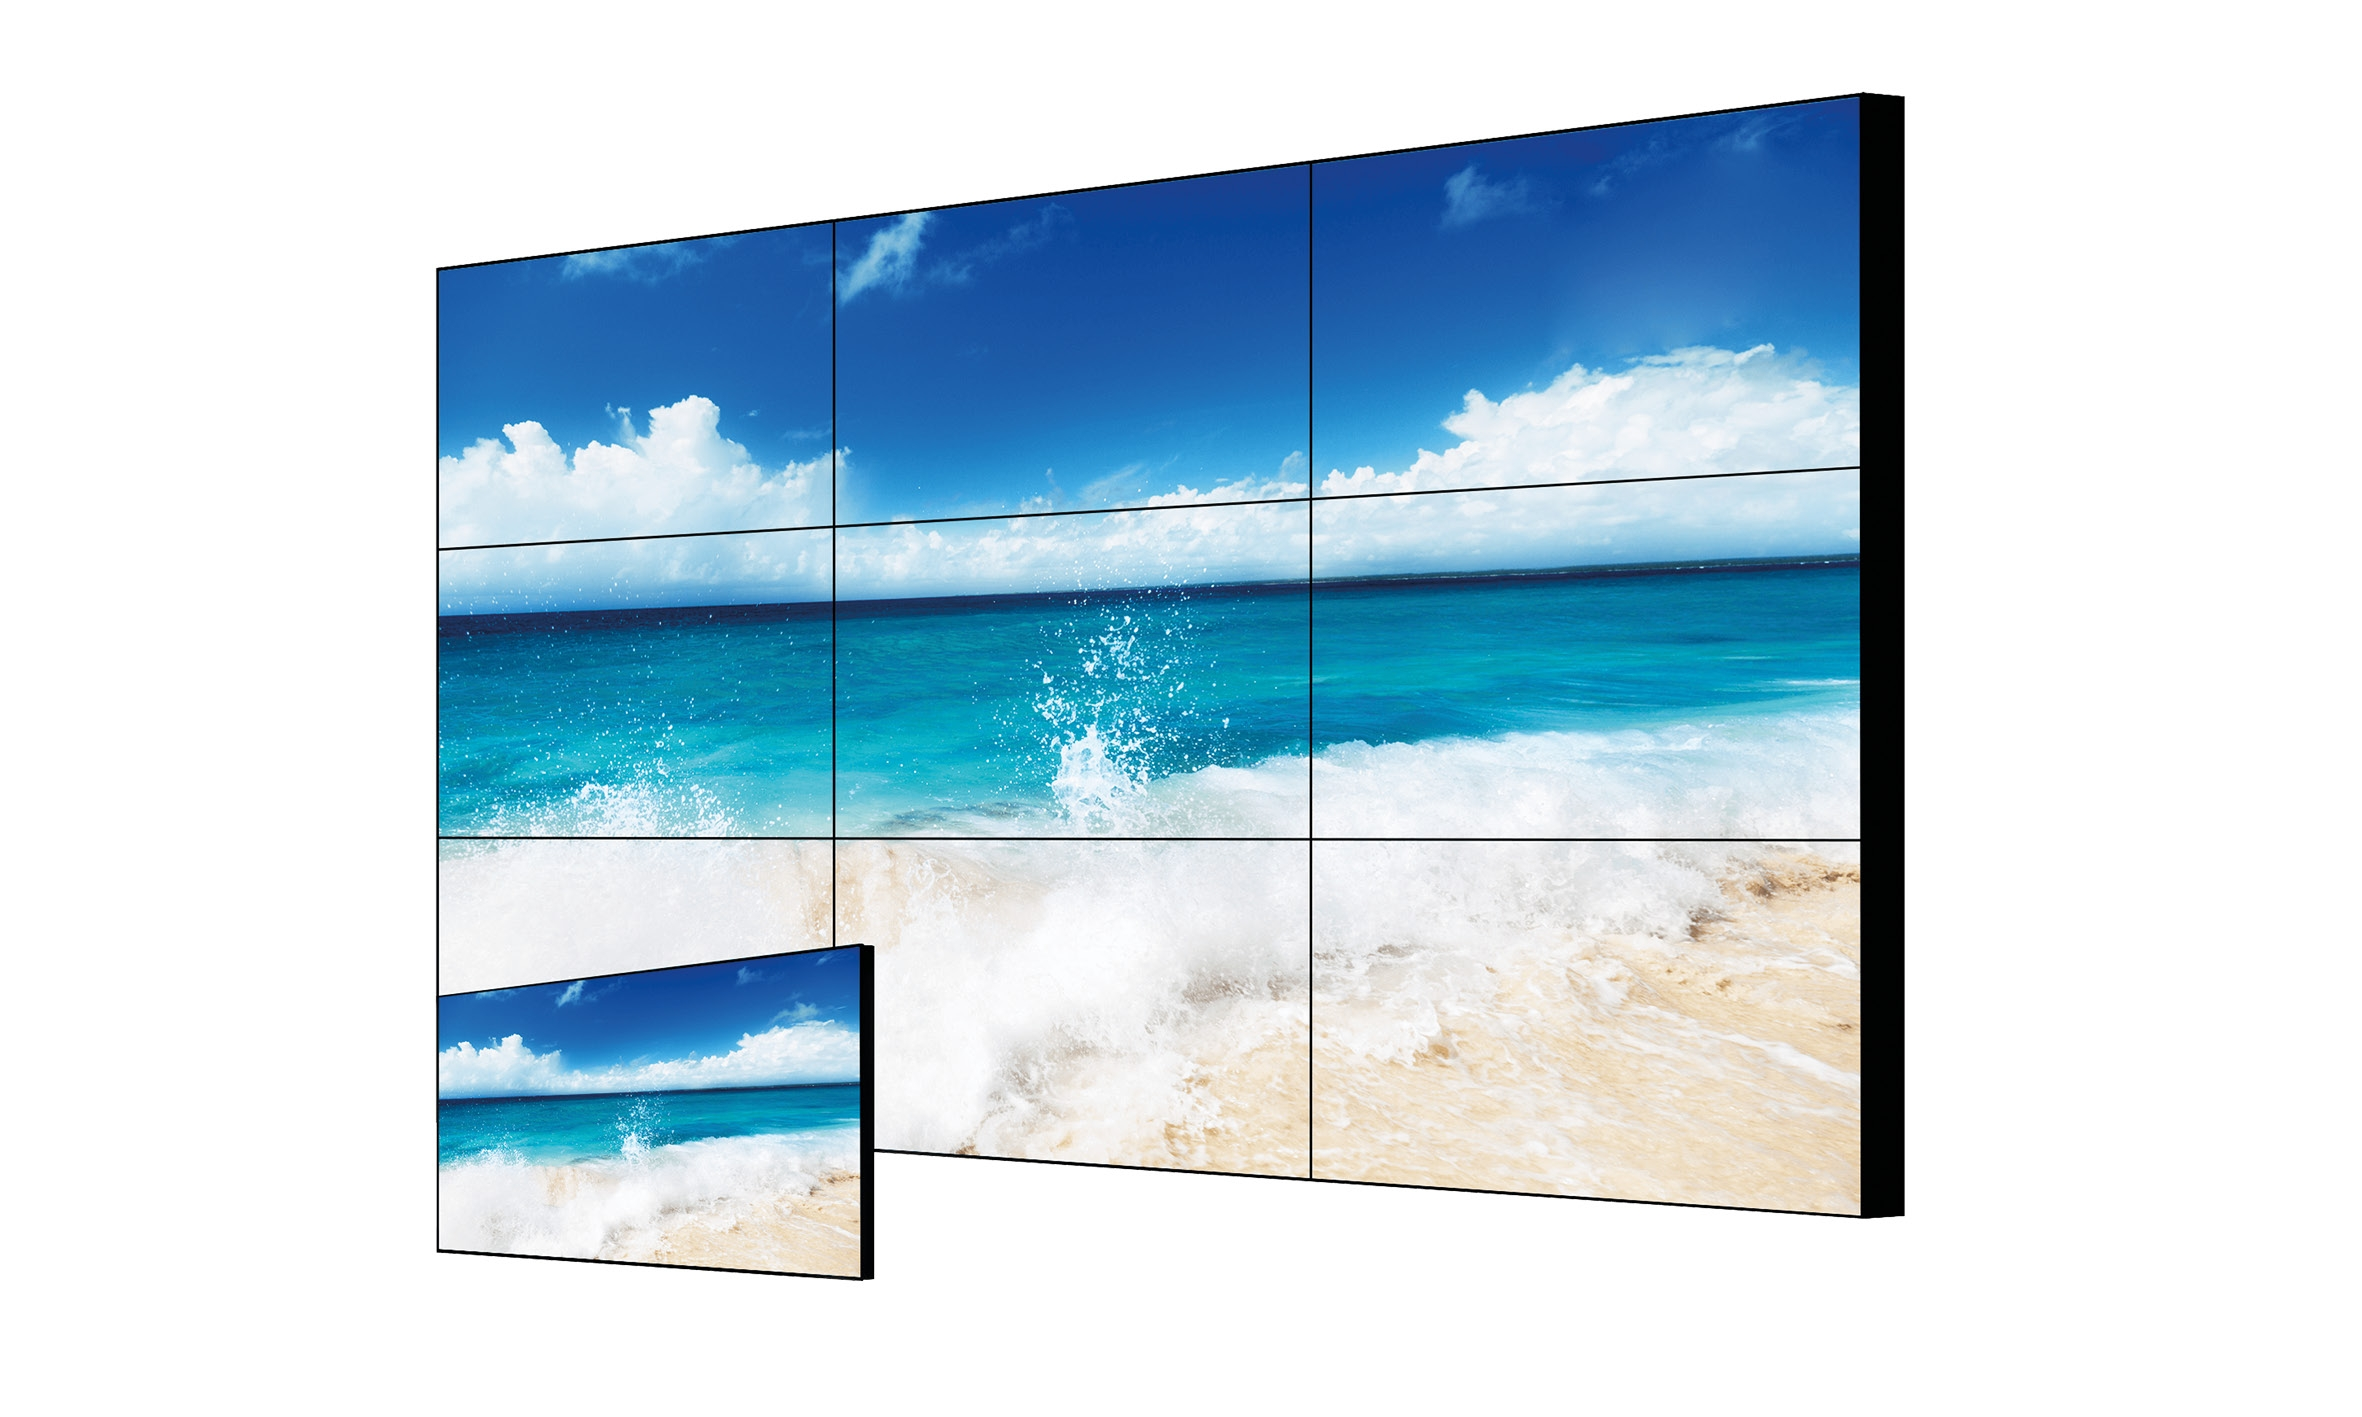 FHD Video Wall Display